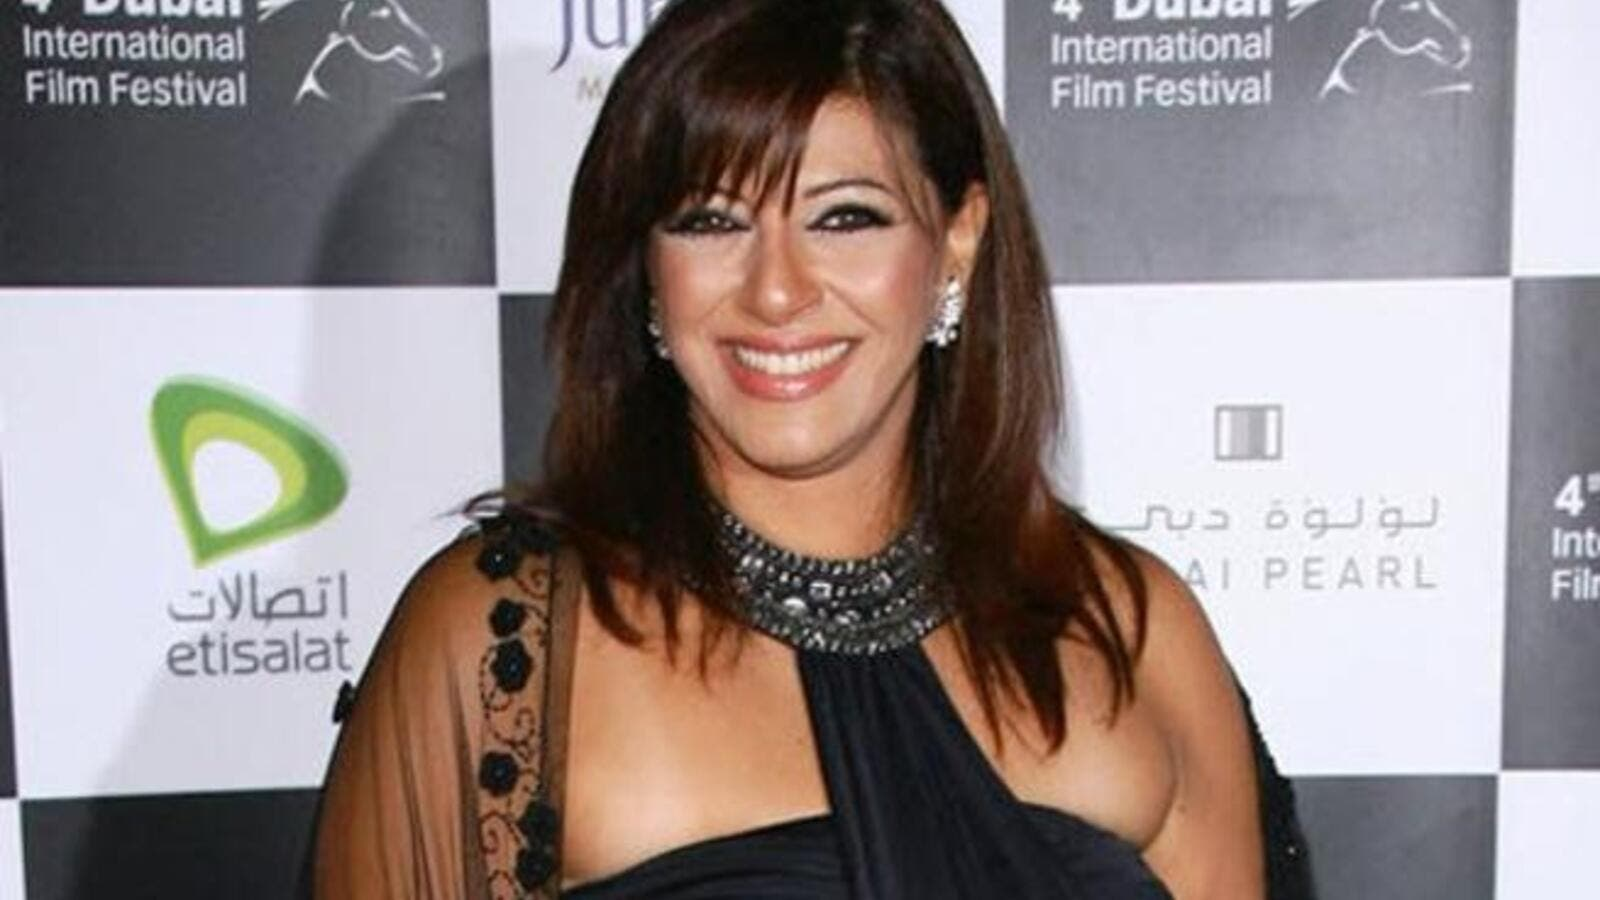 Actress Hala Sedki says the Egyptian revolution has left the country in disarray